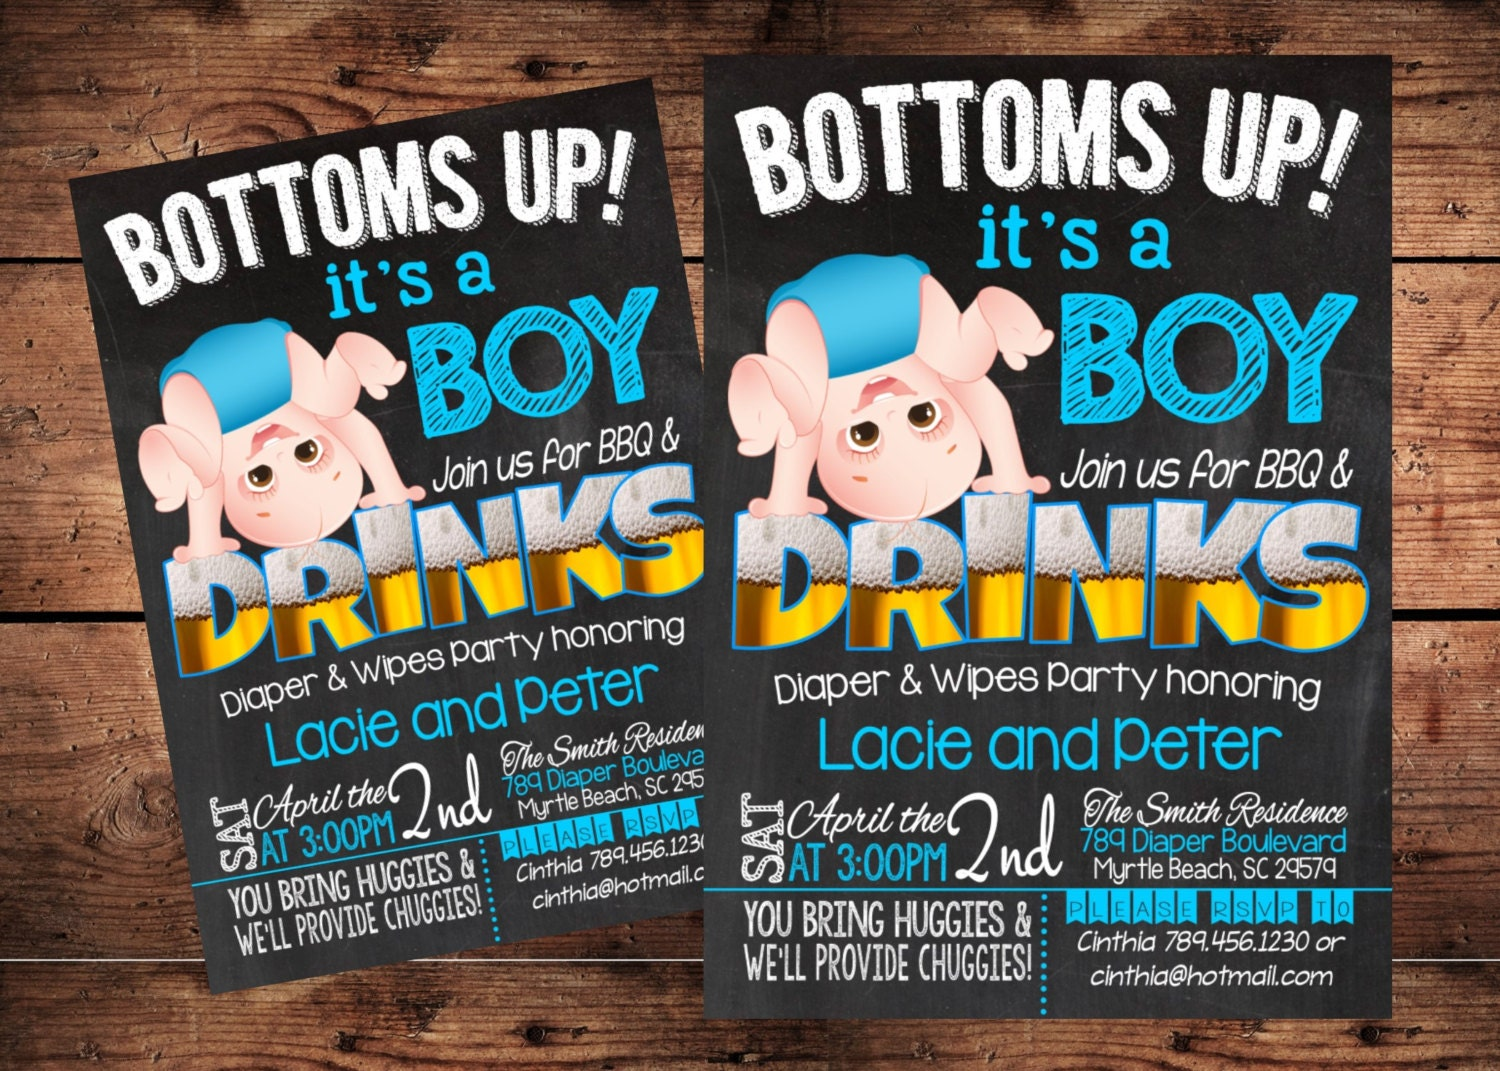 Bottoms up party